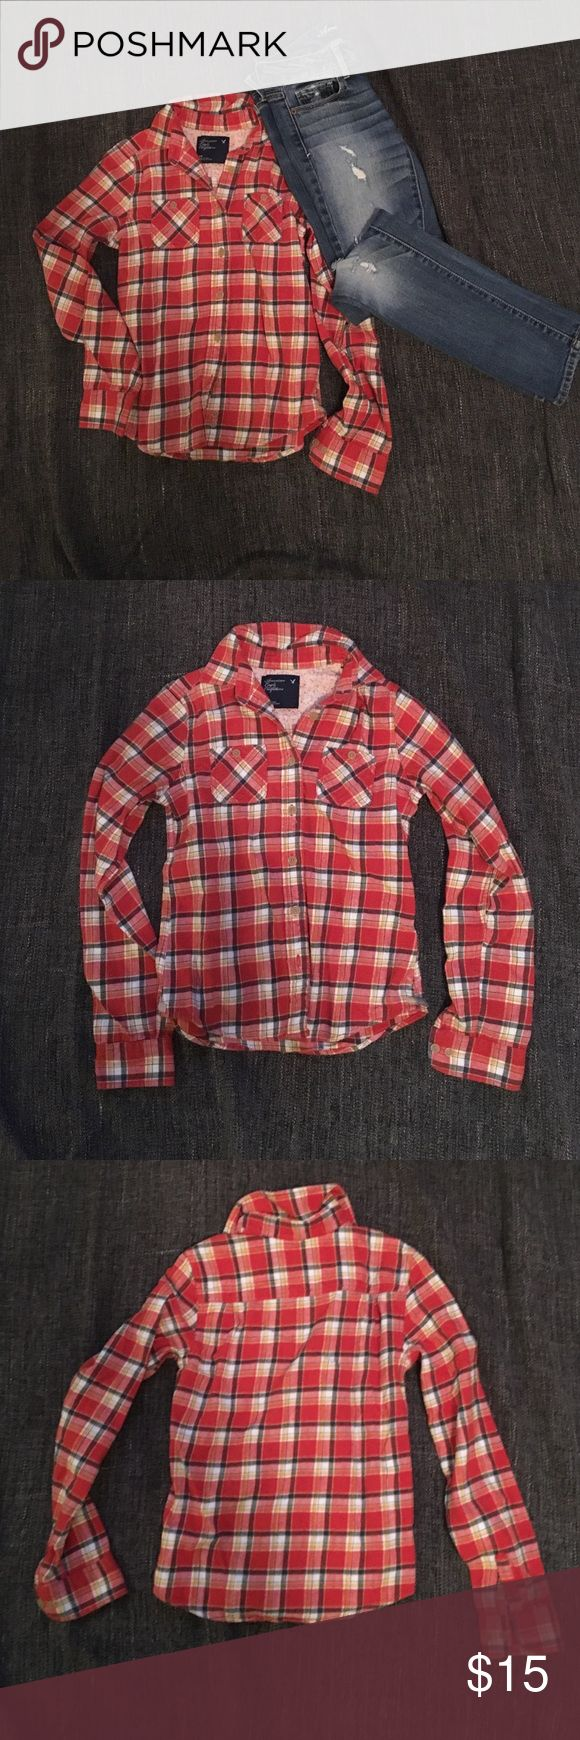 American Eagle flannel Super cute flannel, great condition! Adorable with some ripped jeans (also for sale in my closet) American Eagle Outfitters Tops Button Down Shirts